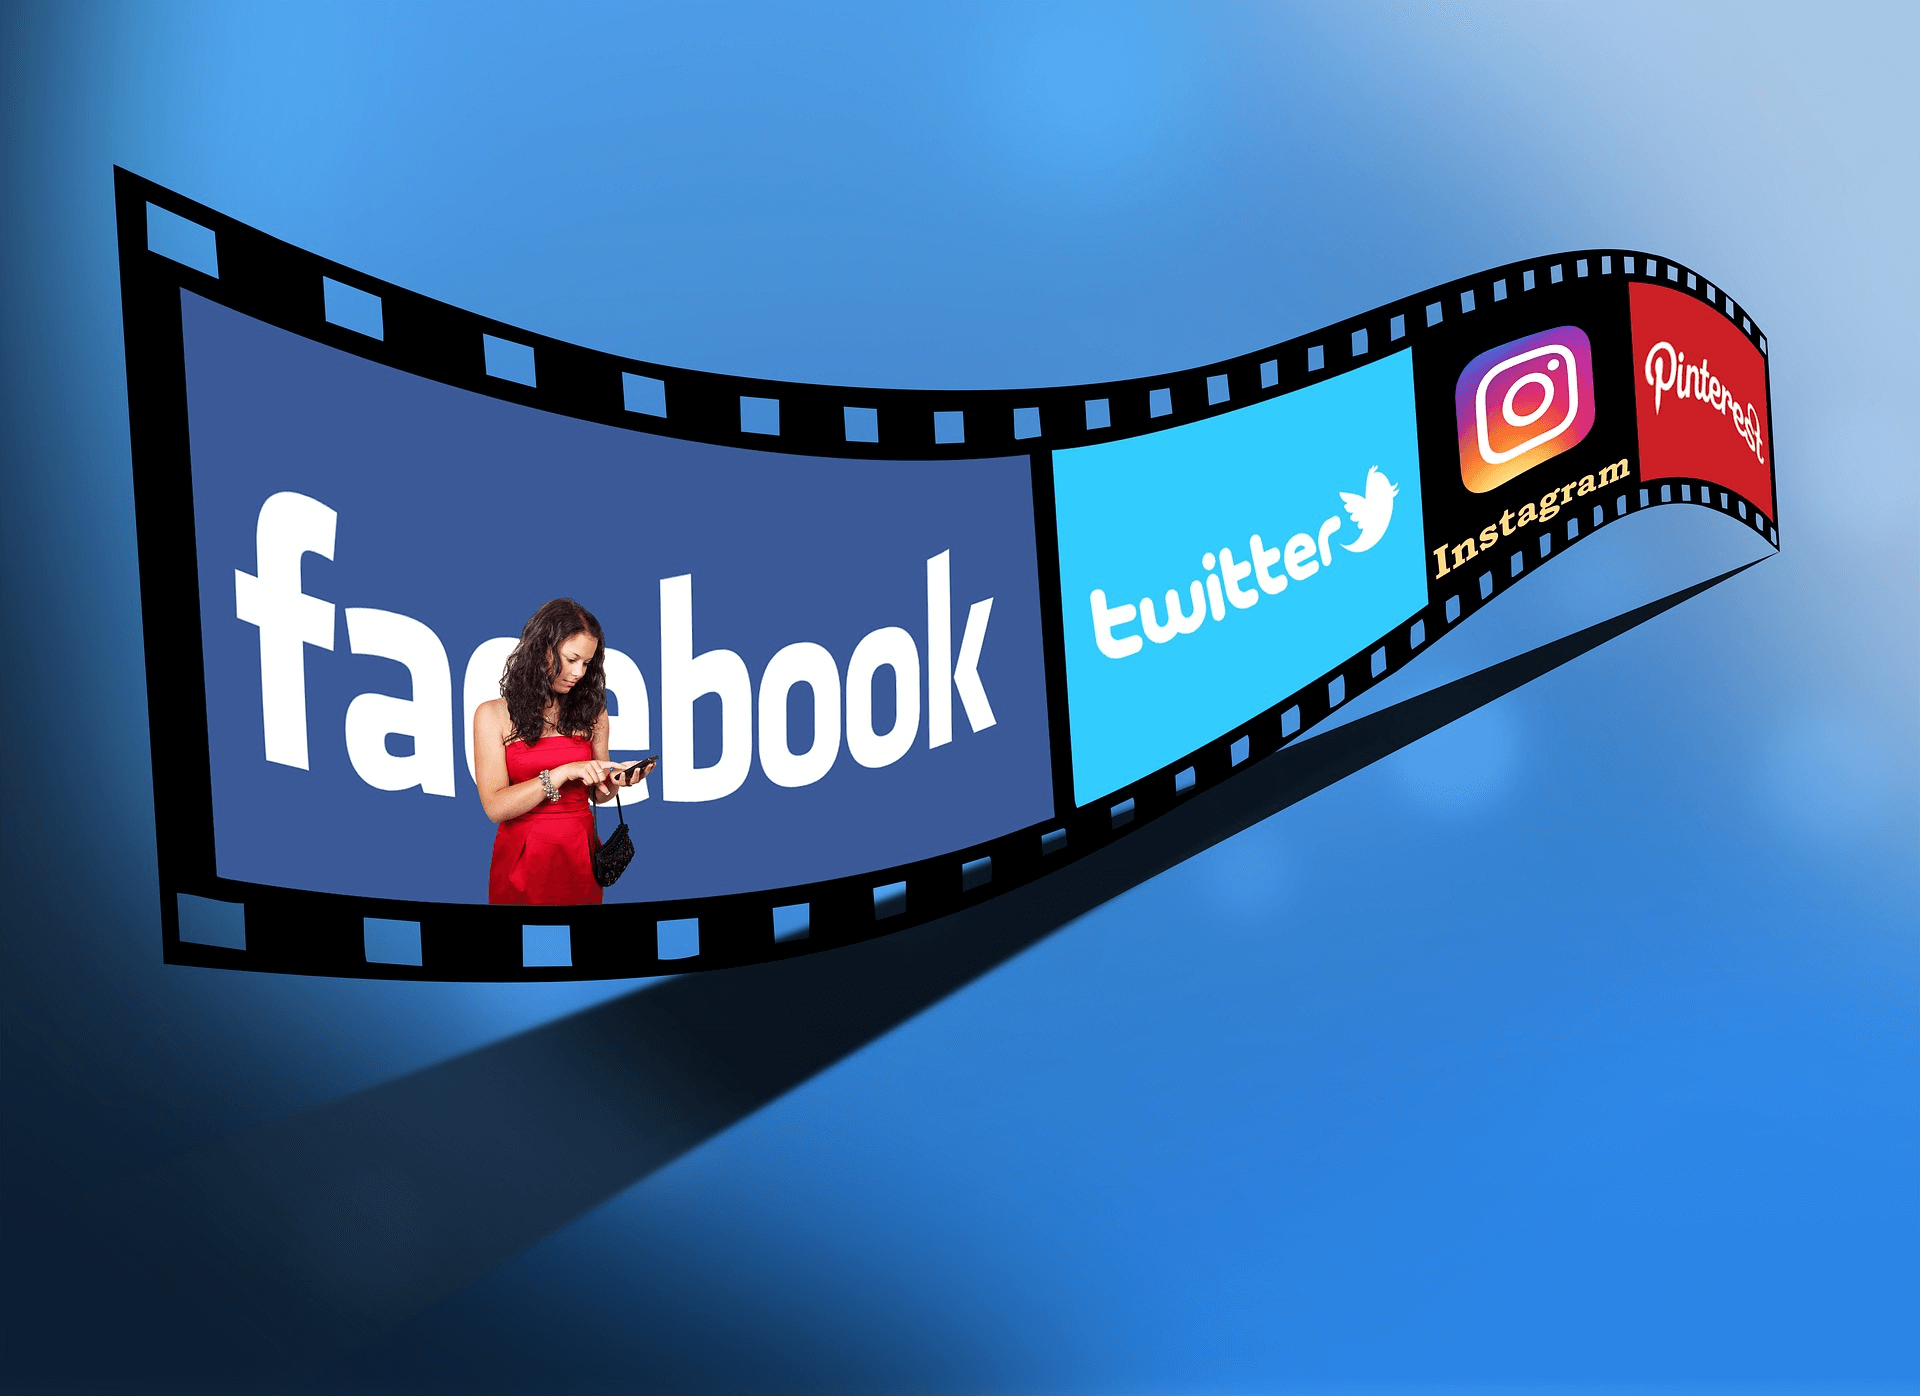 Social Media Videos marketing strategy